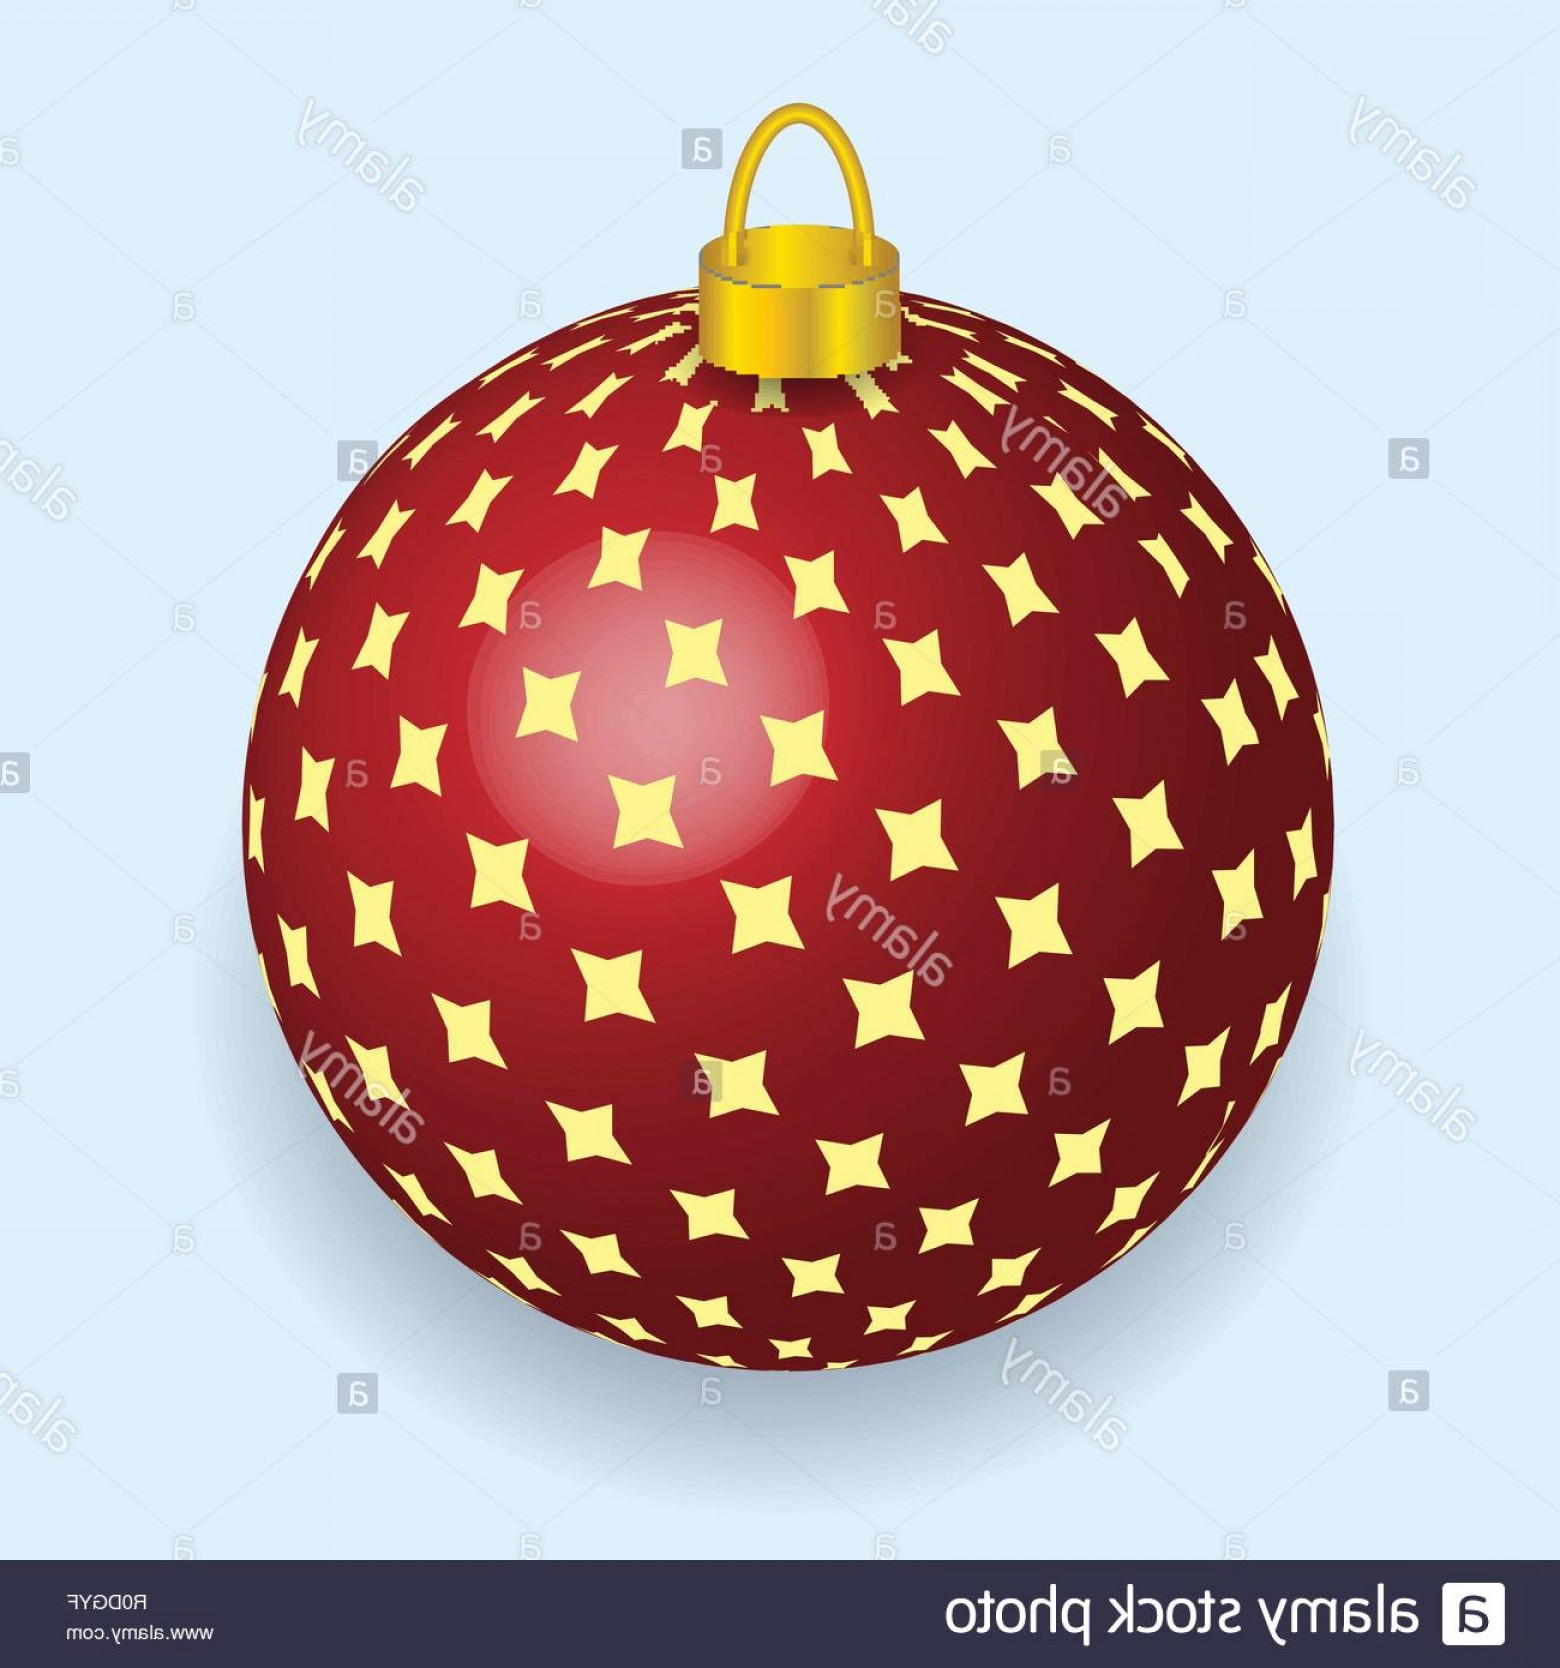 Stars Yellow Christmas Vector: Vector Illustration Of Red With Yellow Stars Christmas Ball Reflecting Light New Year Lights Image